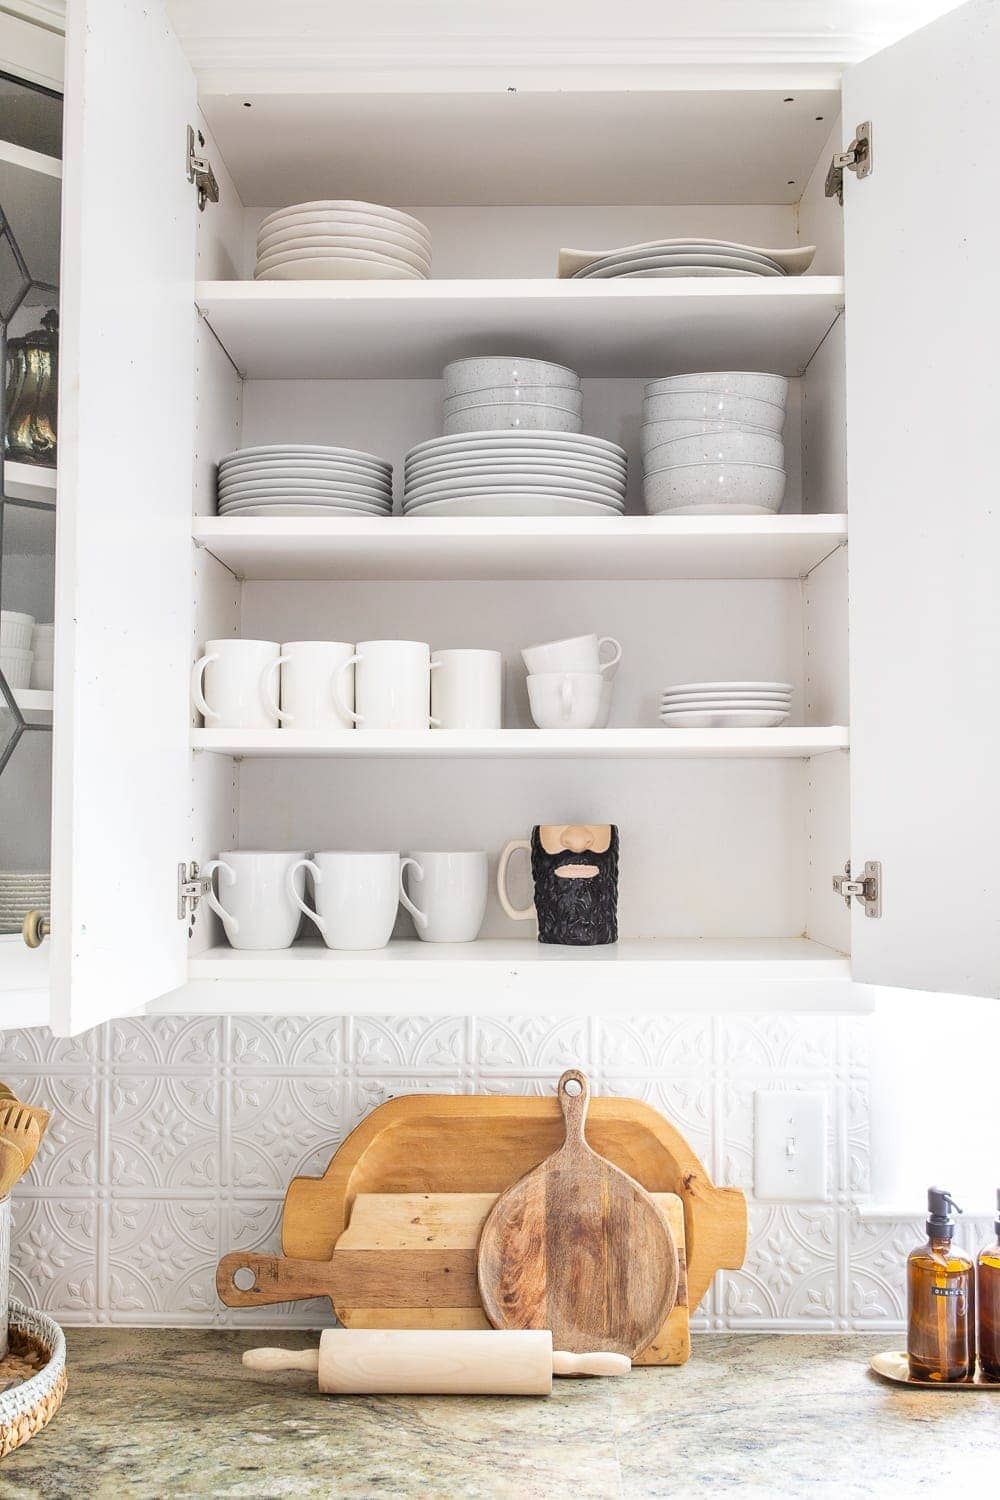 Kitchen Organization Makeover | Dishes Cabinet Organization